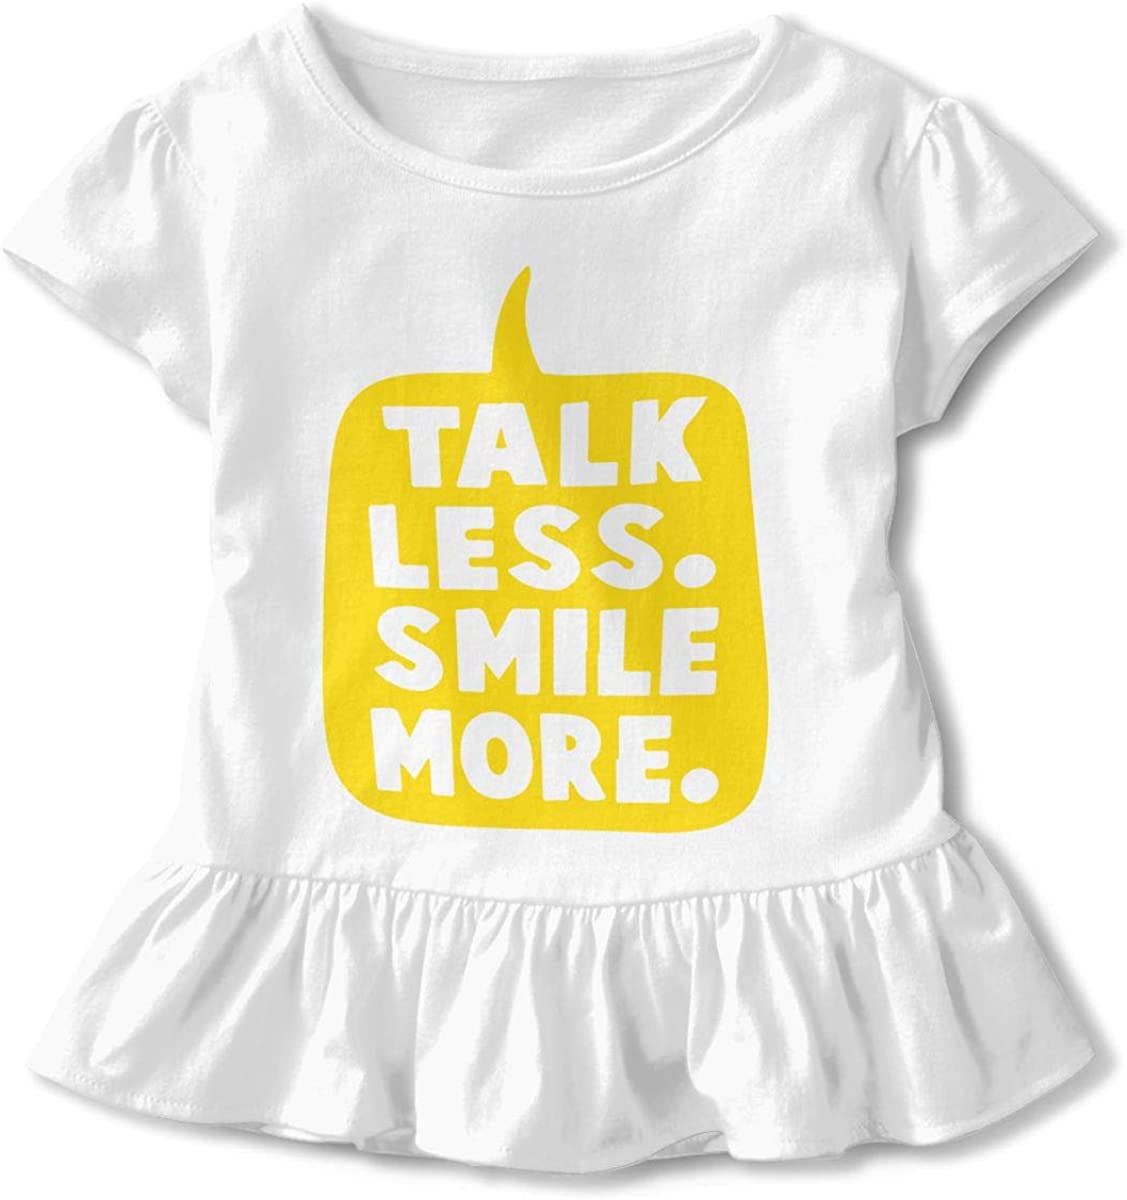 Talk Less Smile More Baby Girls Short Sleeve Tee Pullovers